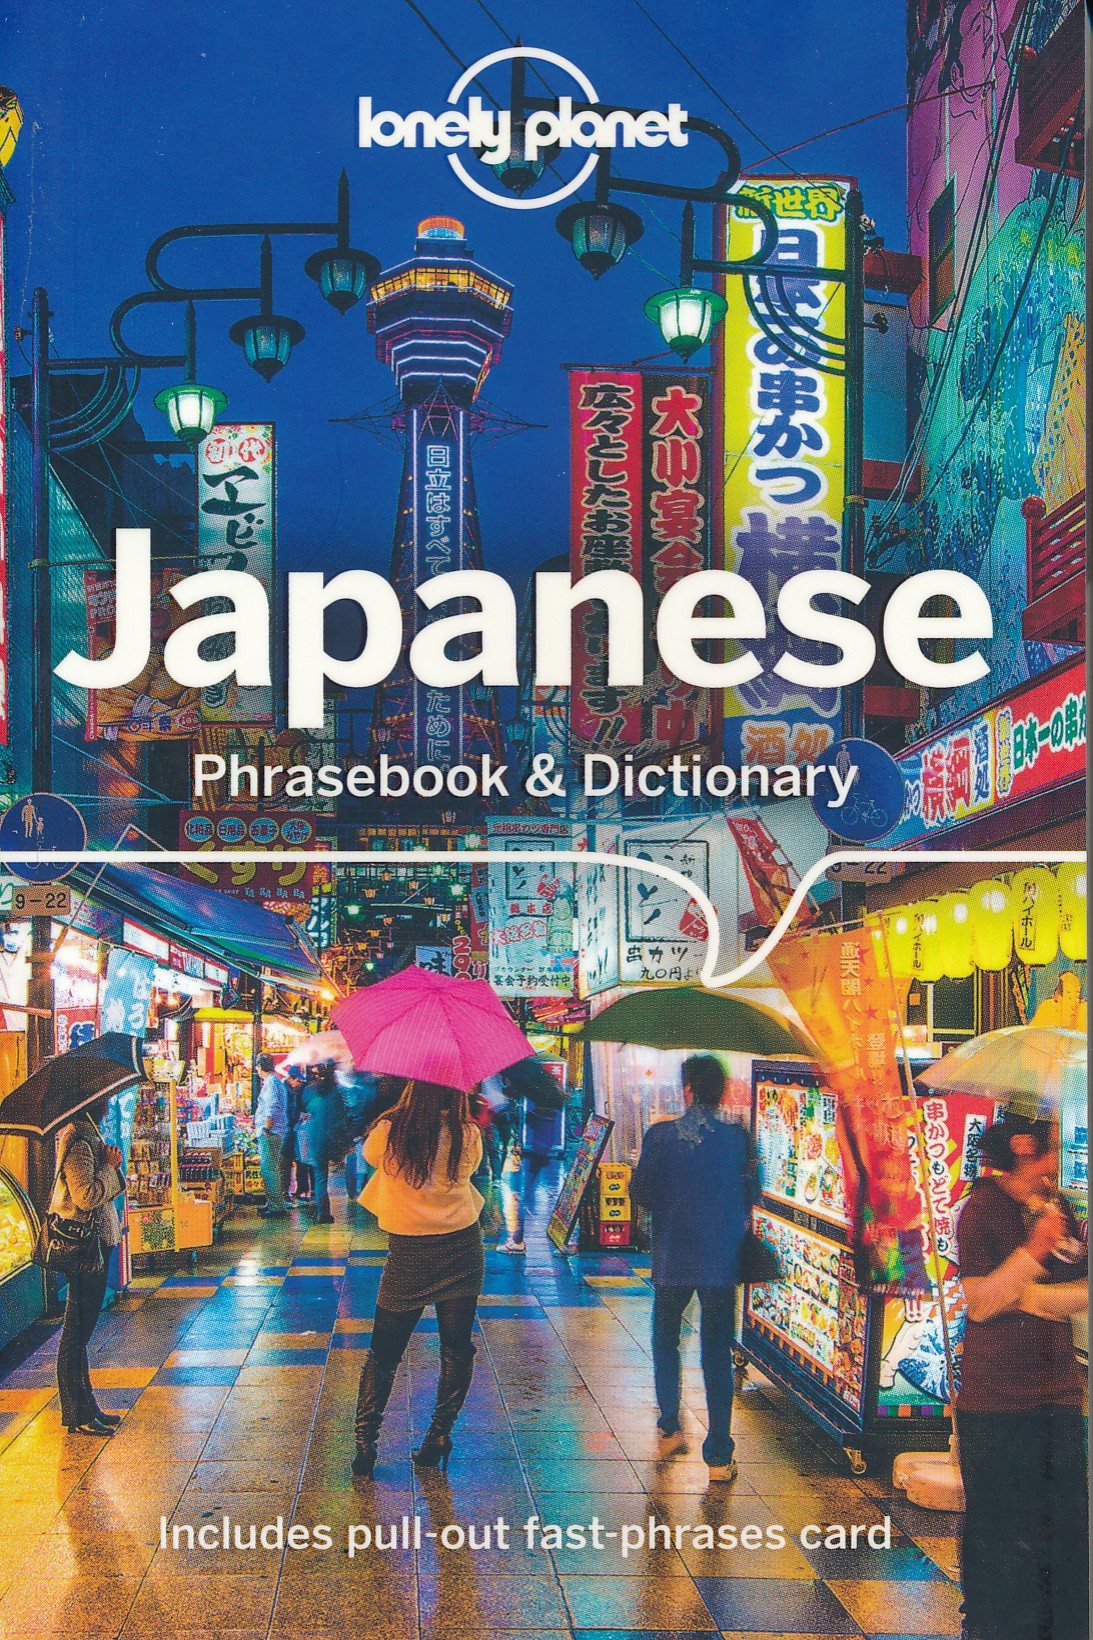 Woordenboek Phrasebook & Dictionary Japanese - Japans | Lonely Planet